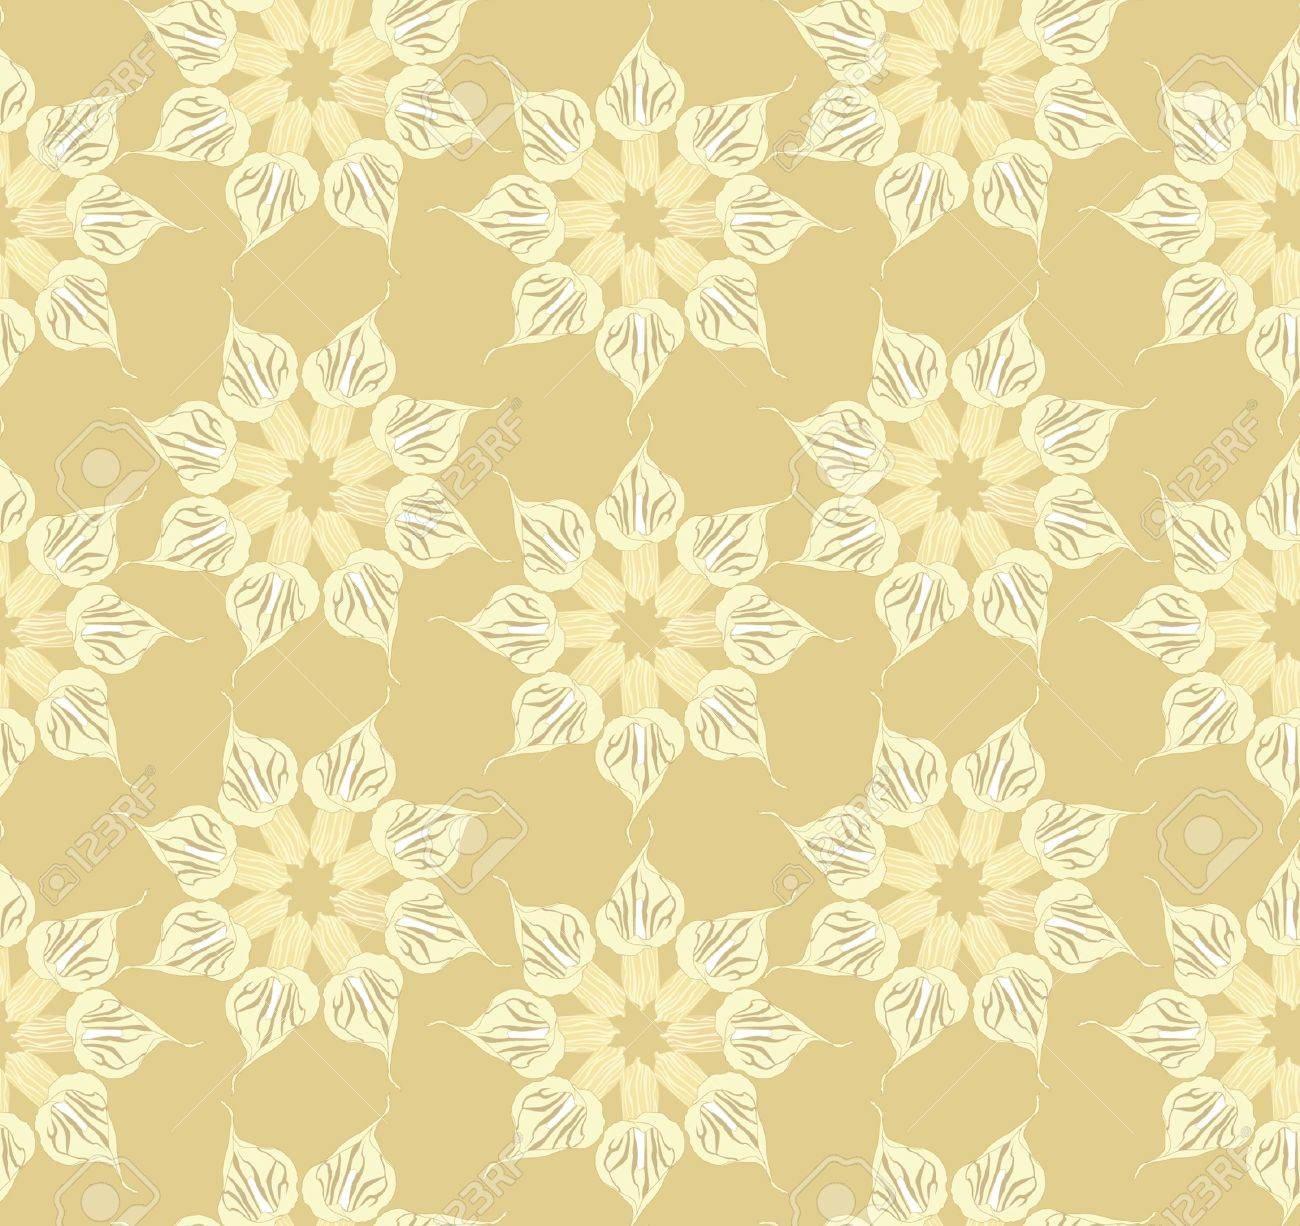 Abstract Decorative Floral Retro Seamless Pattern Flower Cal 1300x1226